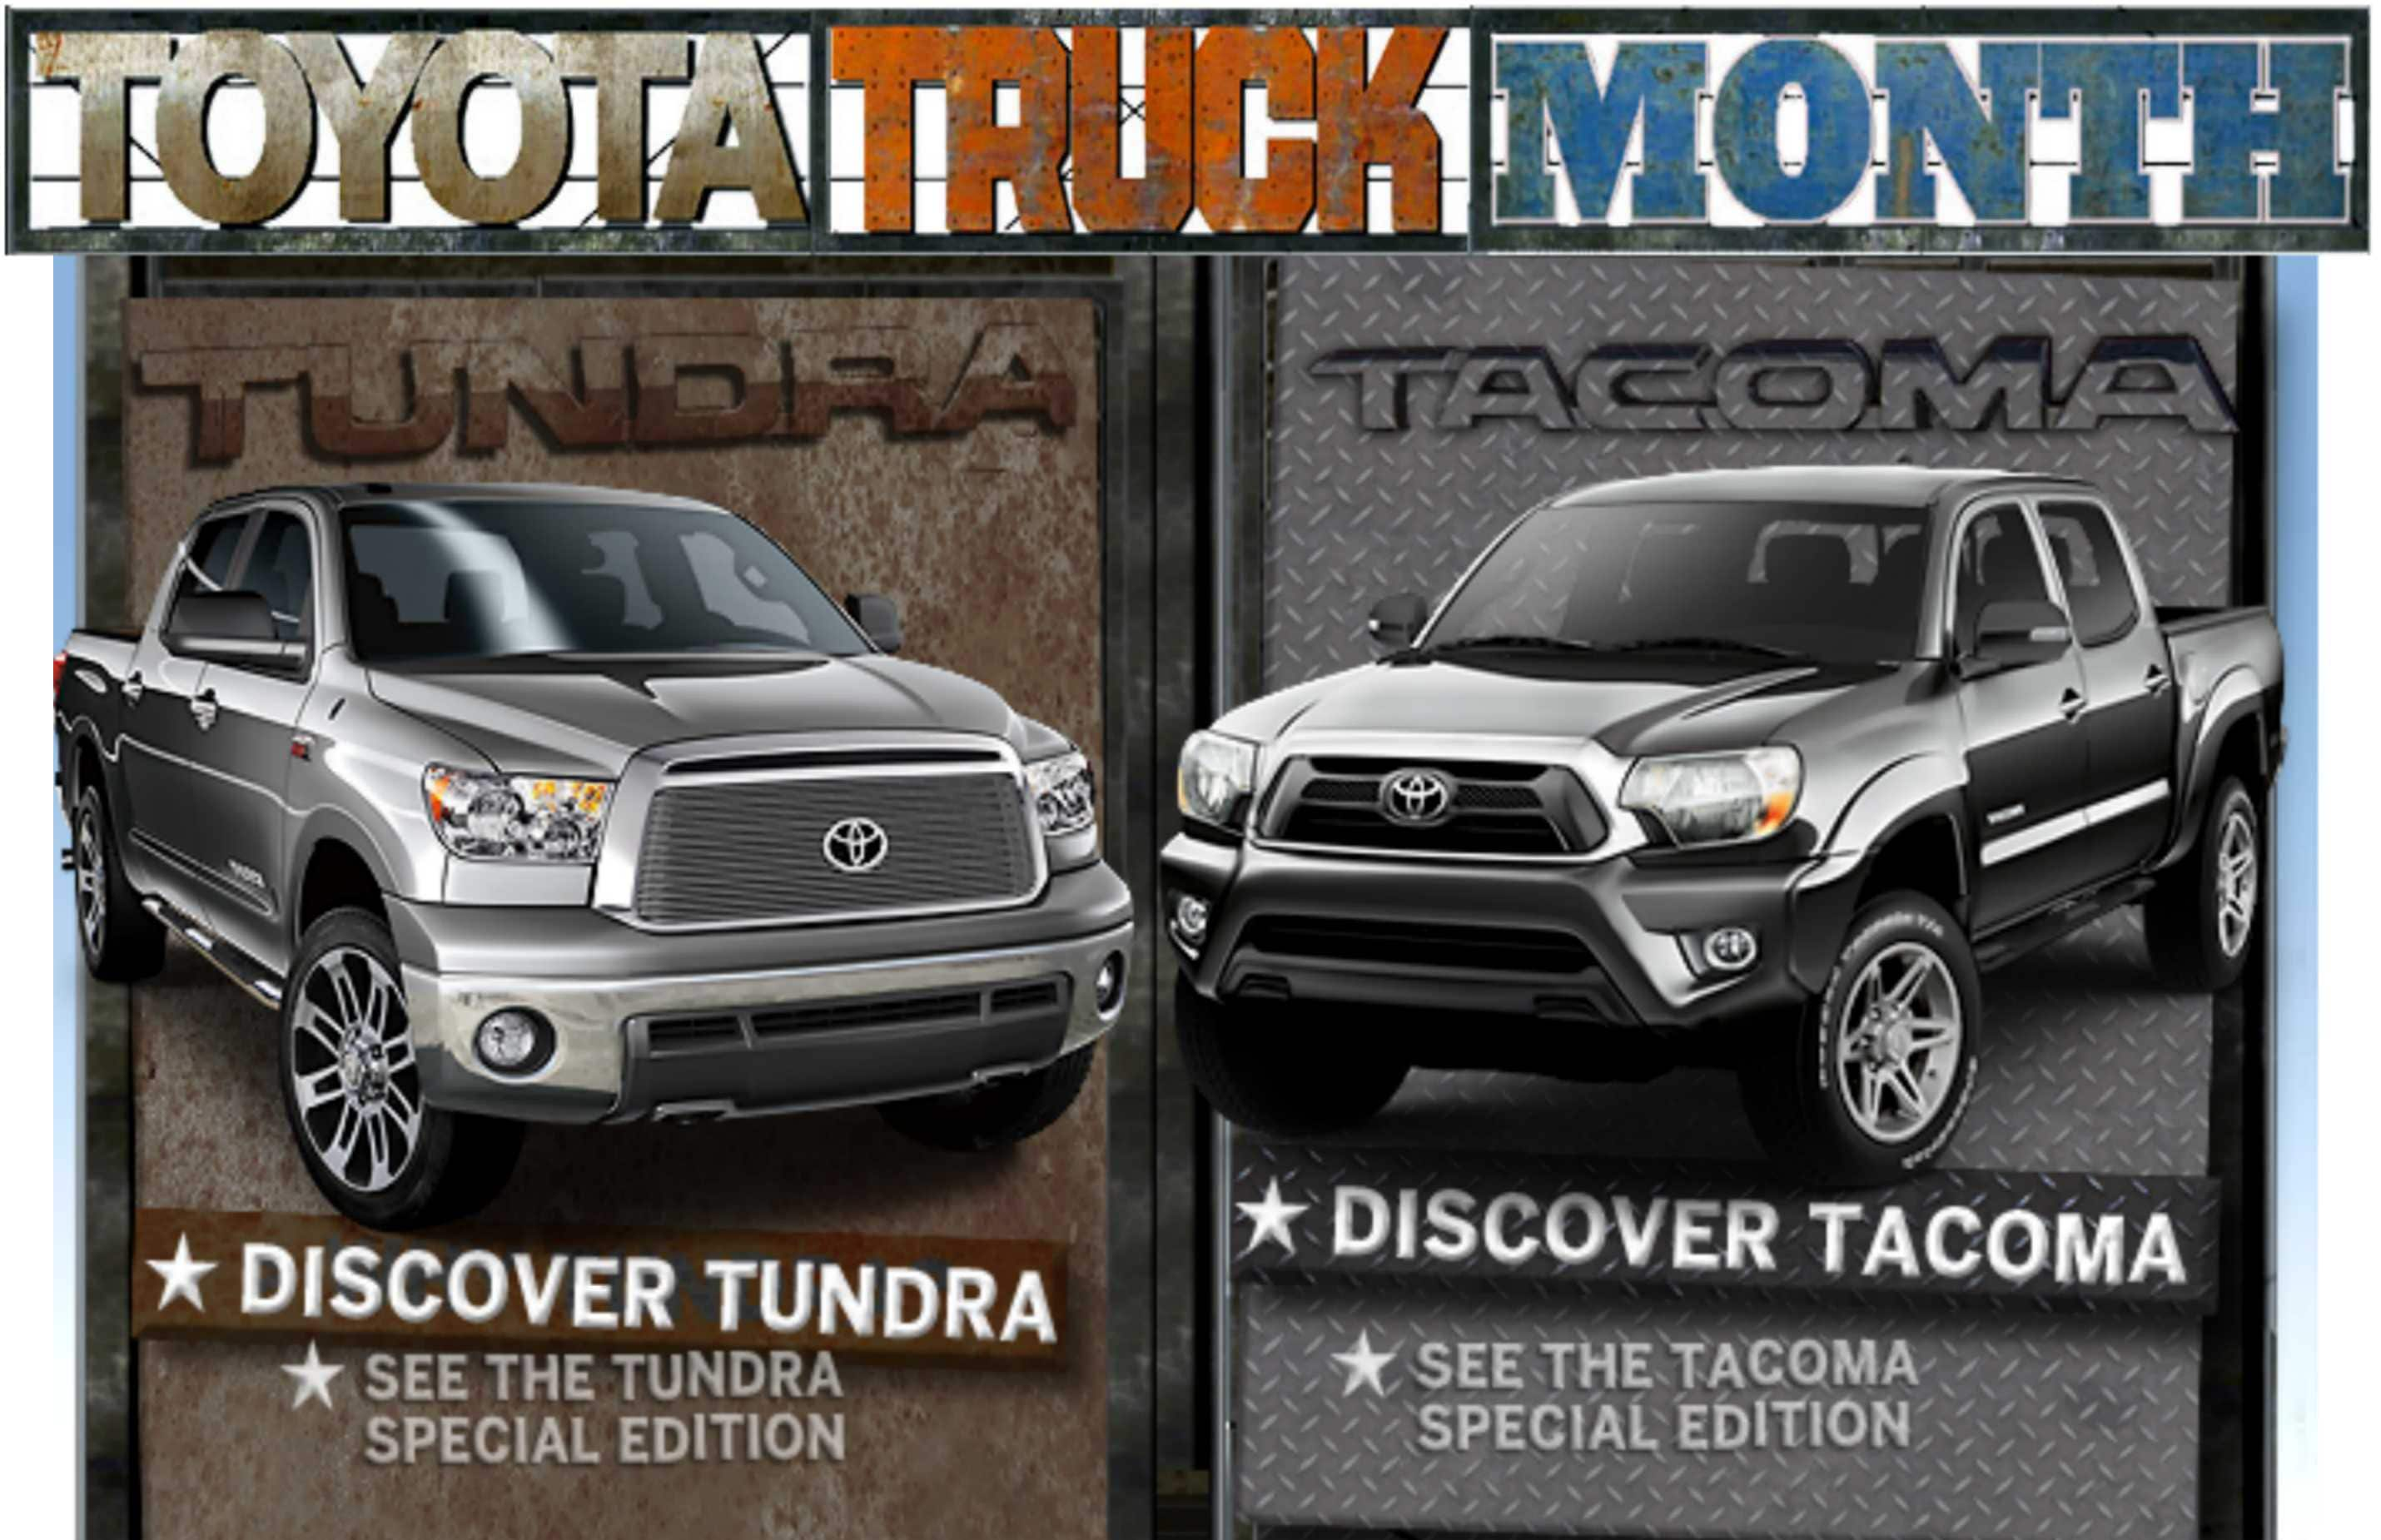 to on london canada new specials lease information or corolla dealership for s vehicle consult refer website toyotatown manual toyota more the in htm owner